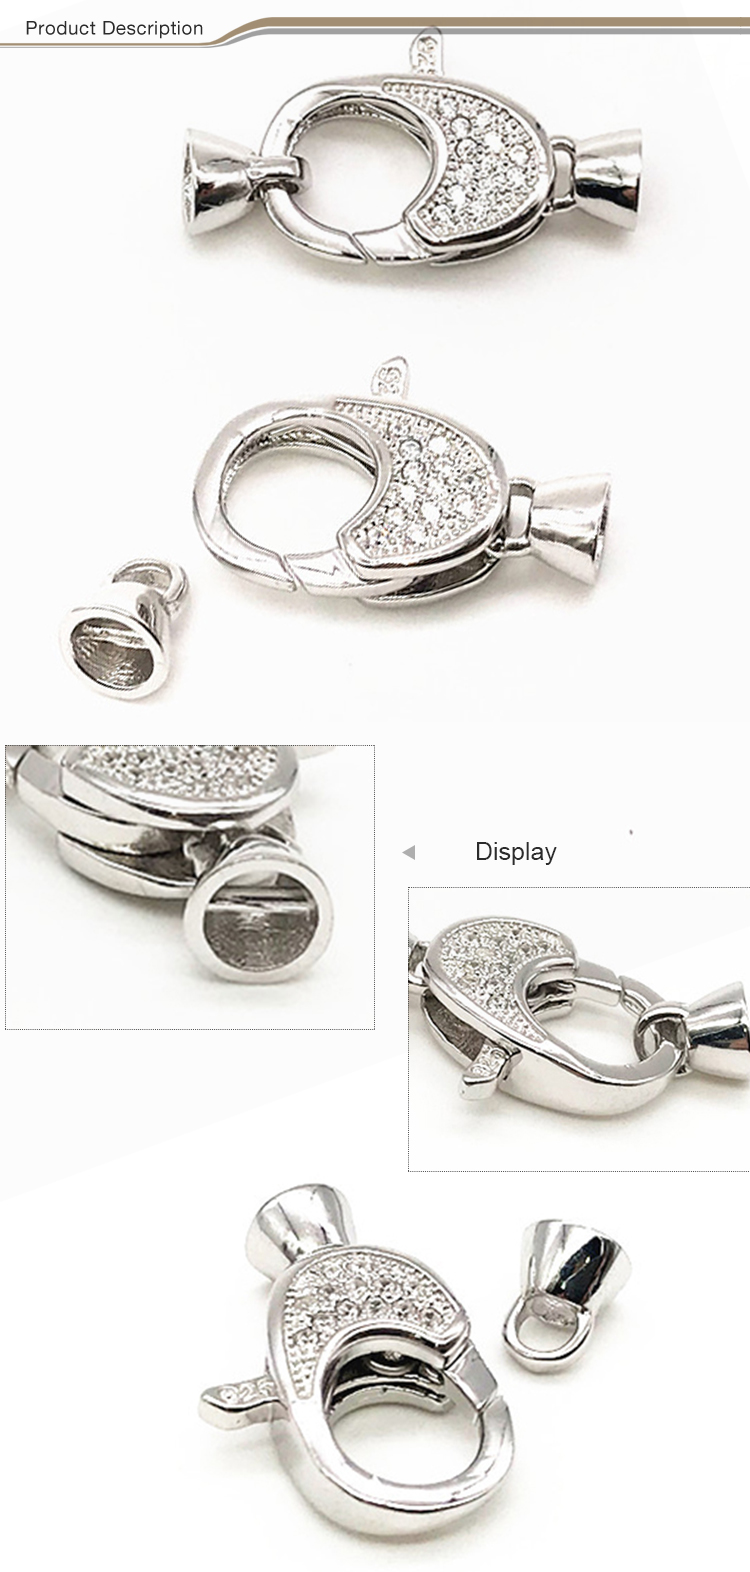 Custom jewelry clasp manufacturer 925 sterling adjustable necklace silver double lobster clasp clasp lock